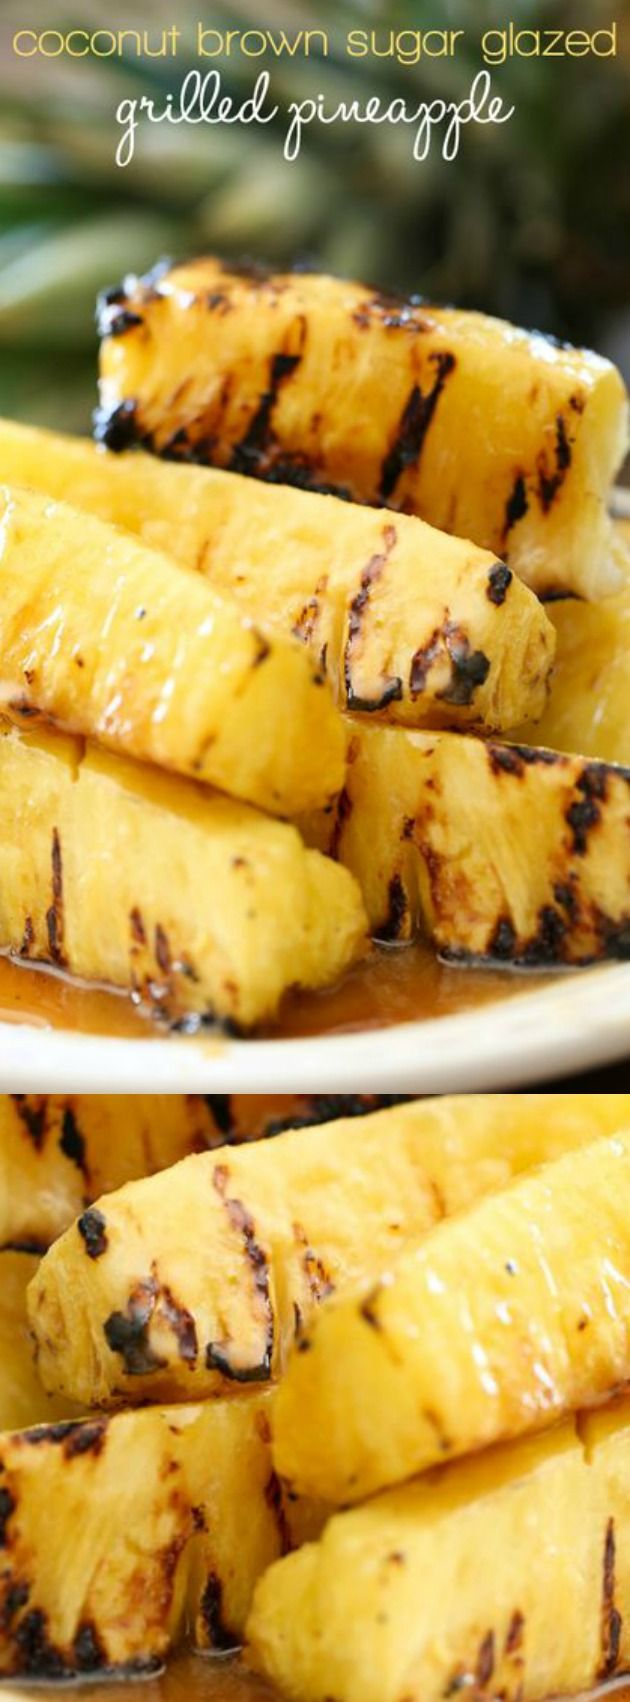 This Coconut Brown Sugar Grilled Pineapple recipe from Chef In Training is going to become your new go-to recipe for all of your parties this year! It tastes INCREDIBLE!!! The coconut and pineapple go together perfectly and create something that your friends and family will go CRAZY for!